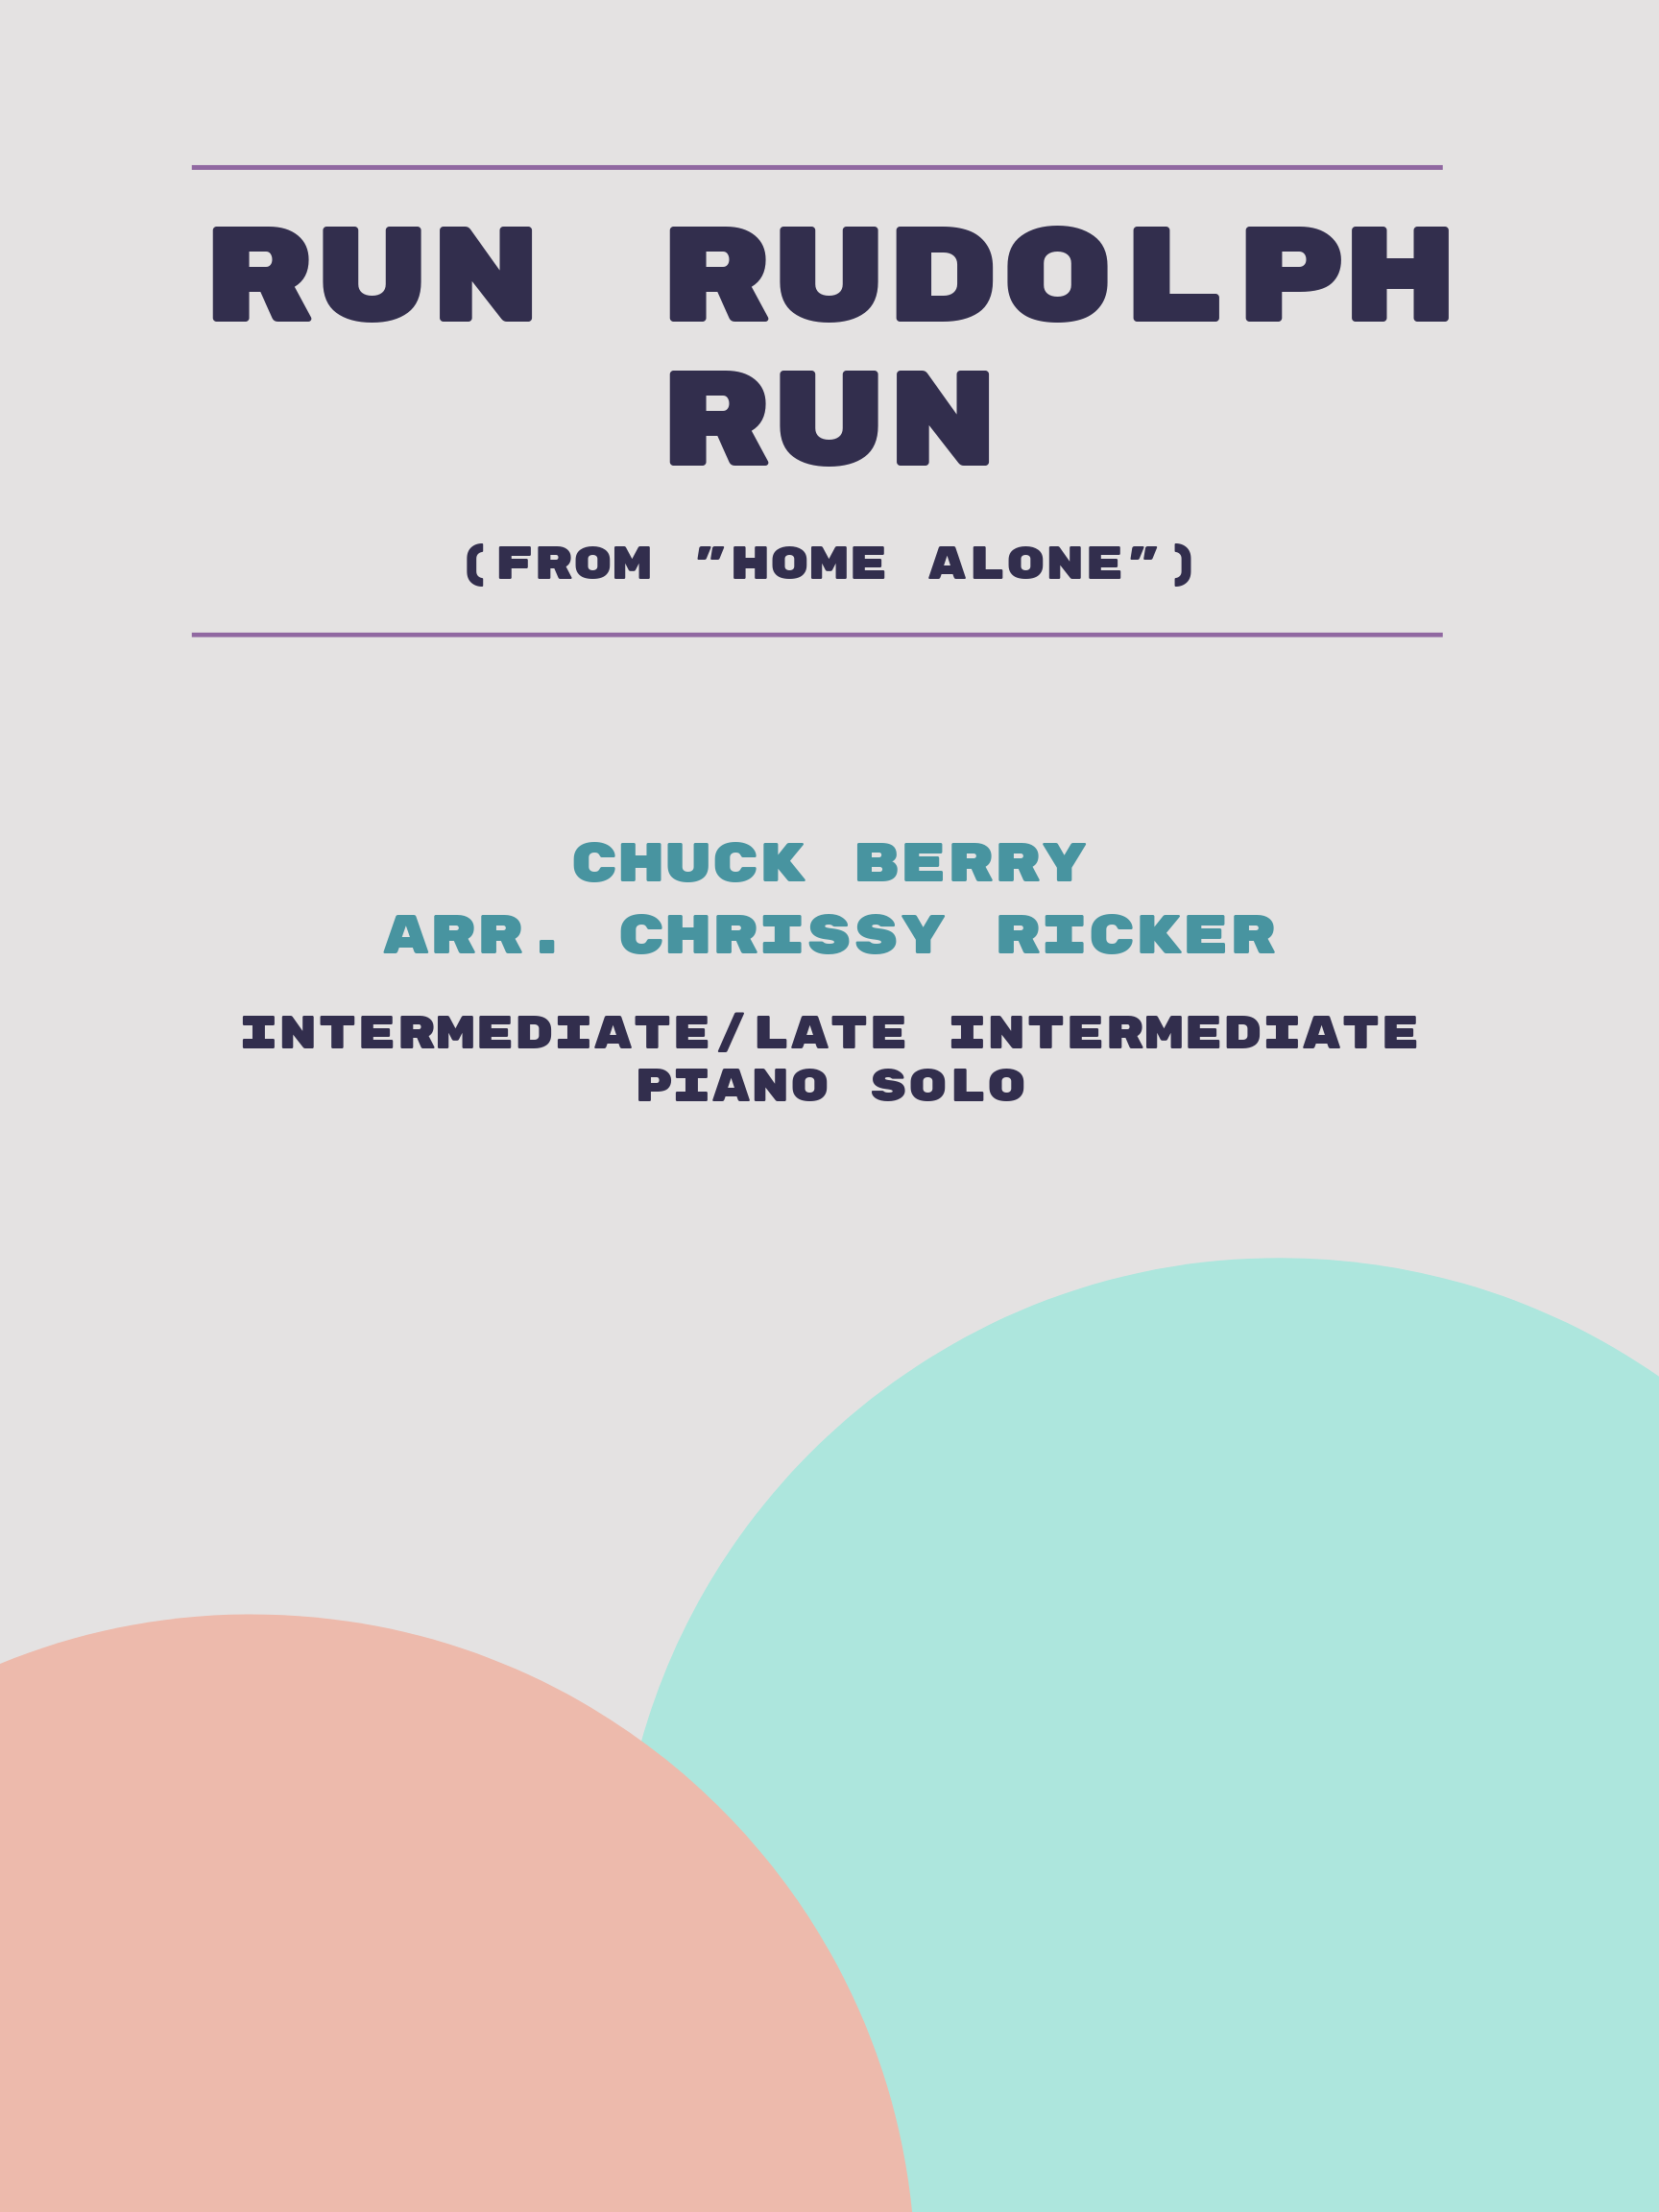 Run Rudolph Run by Chuck Berry